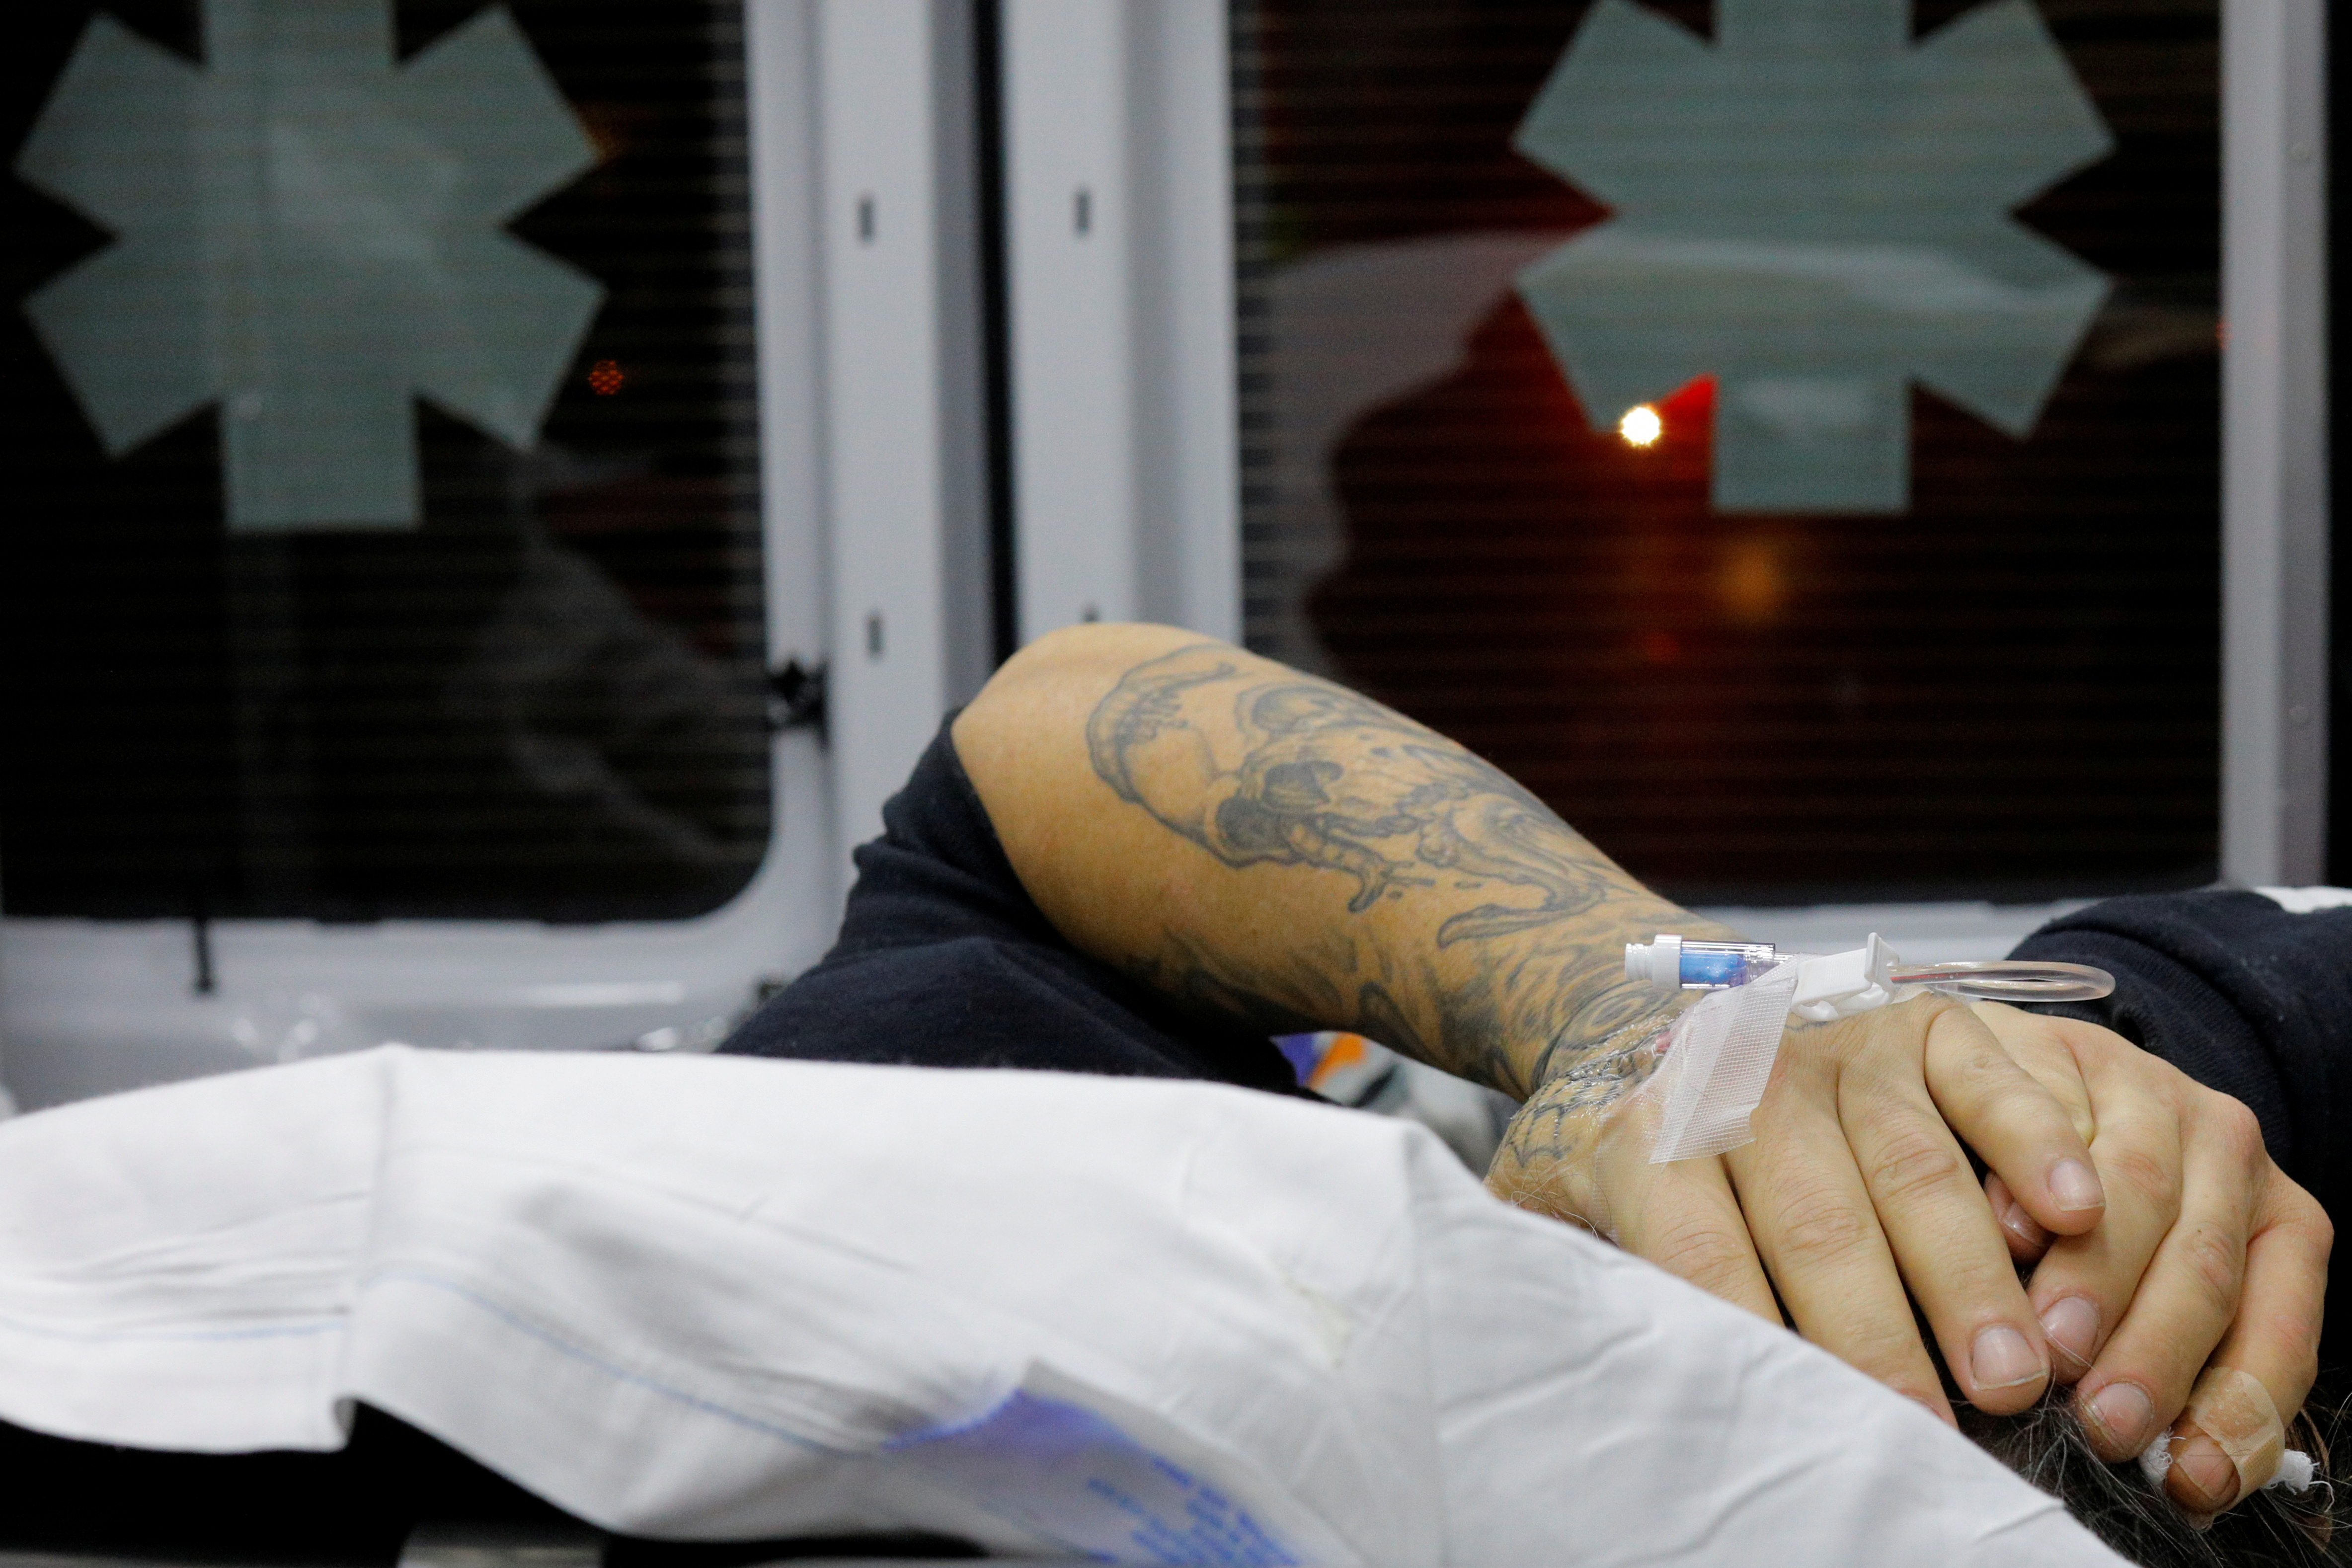 A 41-year-old man found unconscious after overdosing on opioids in the driver's seat of a car, with the engine running and the transmission in drive, puts his hands over his head in the back of a Cataldo Ambulance at a gas station in the Boston suburb of Malden, Massachusetts, December 2, 2017.  REUTERS/Brian Snyder/File Photo